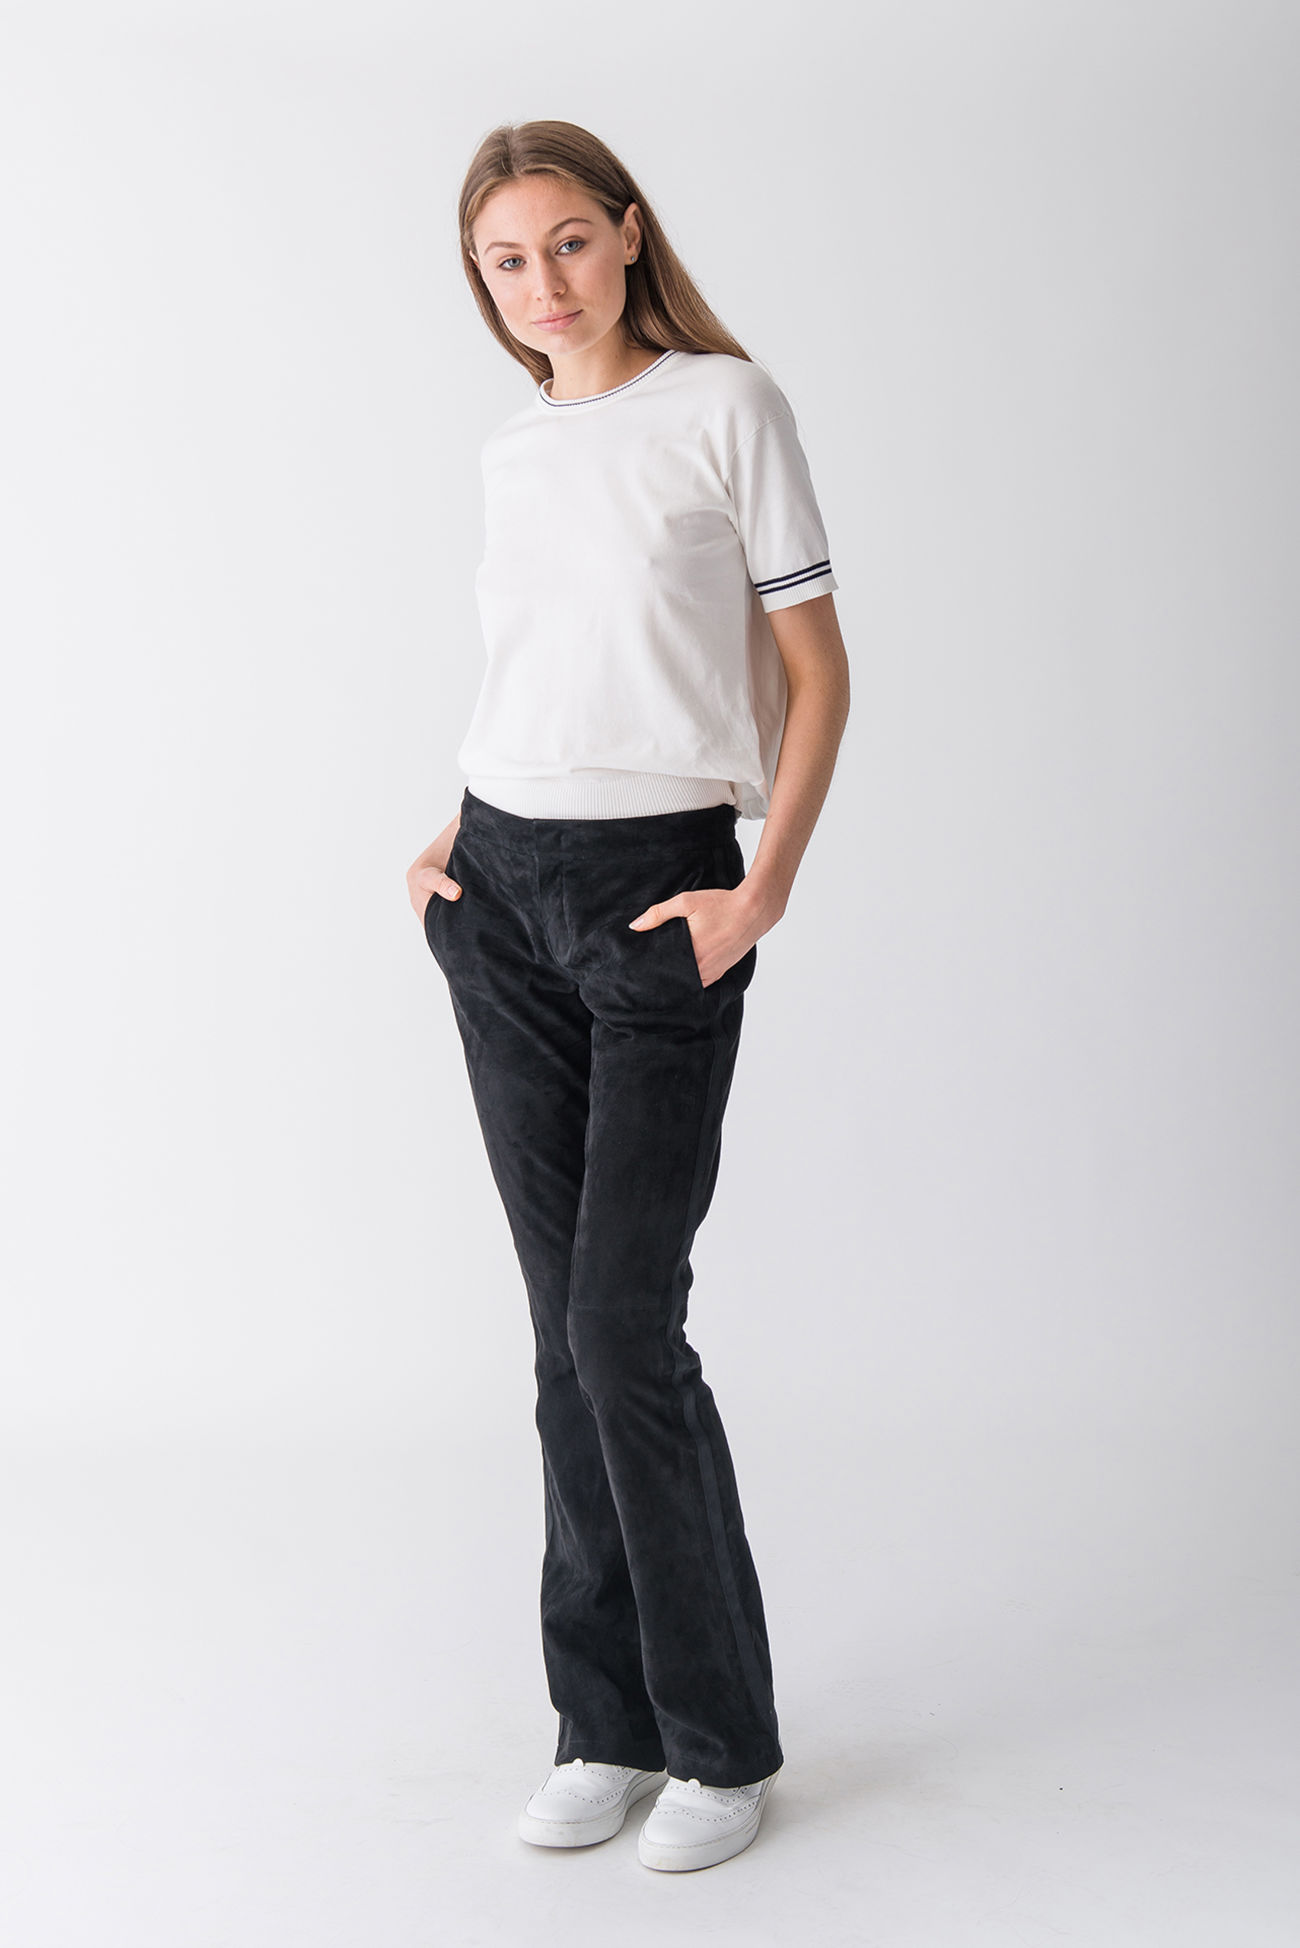 Highly elegant stretch suede trousers with a straight cut